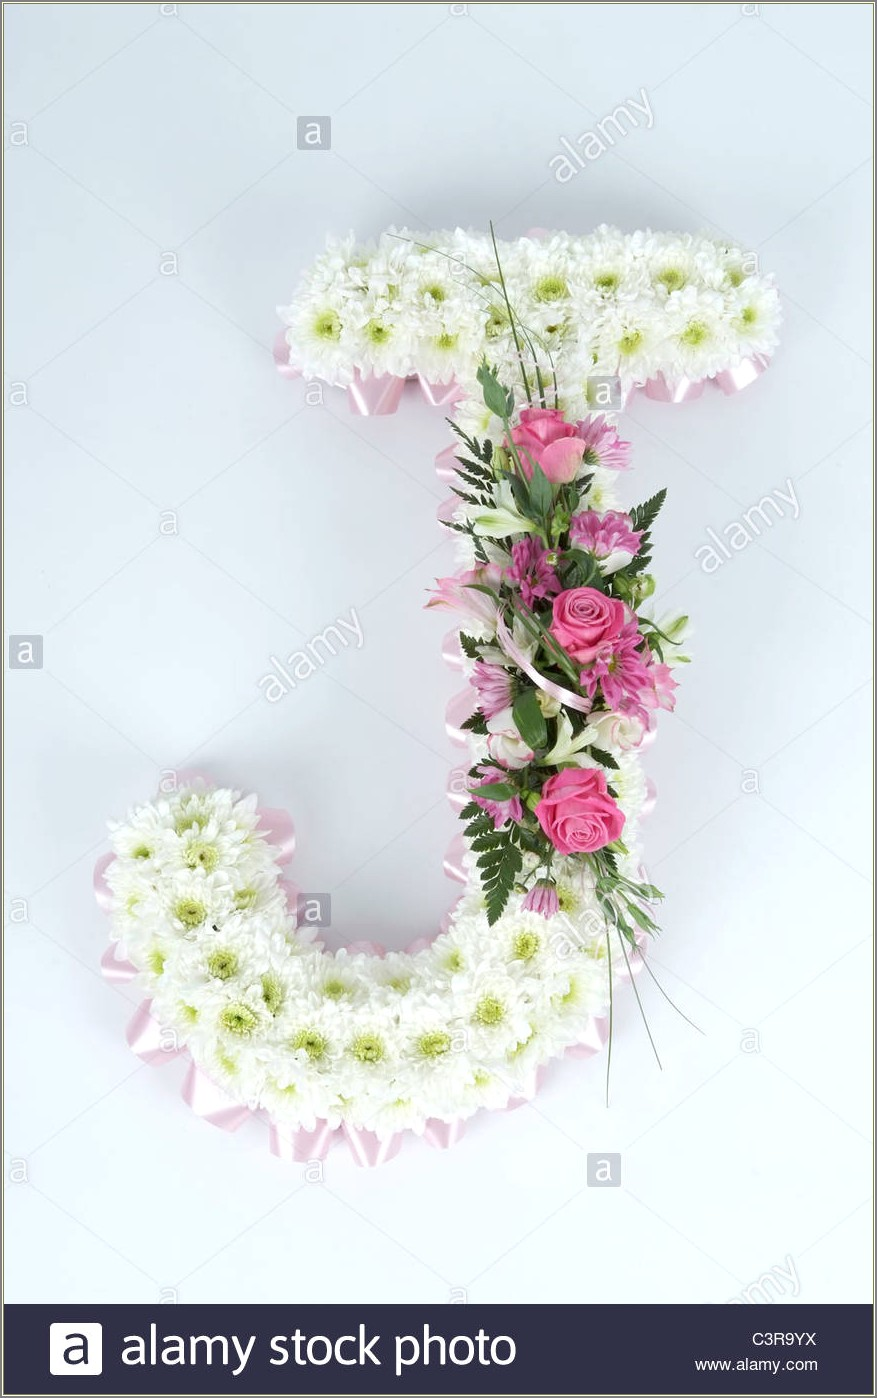 J Letter Images With Flowers